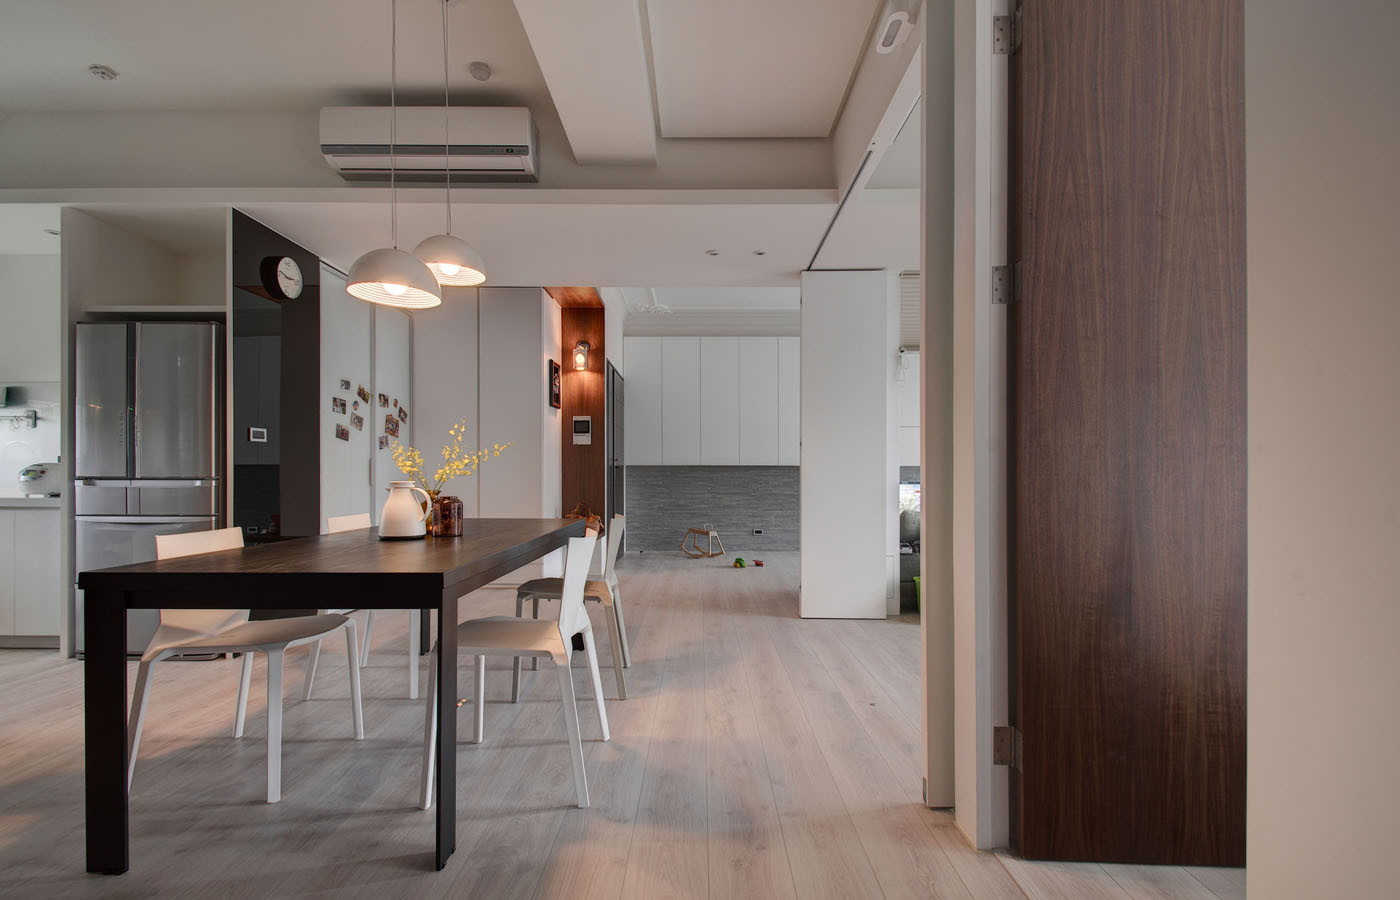 DSC_ - Modern apartment designs by phase6 design studio